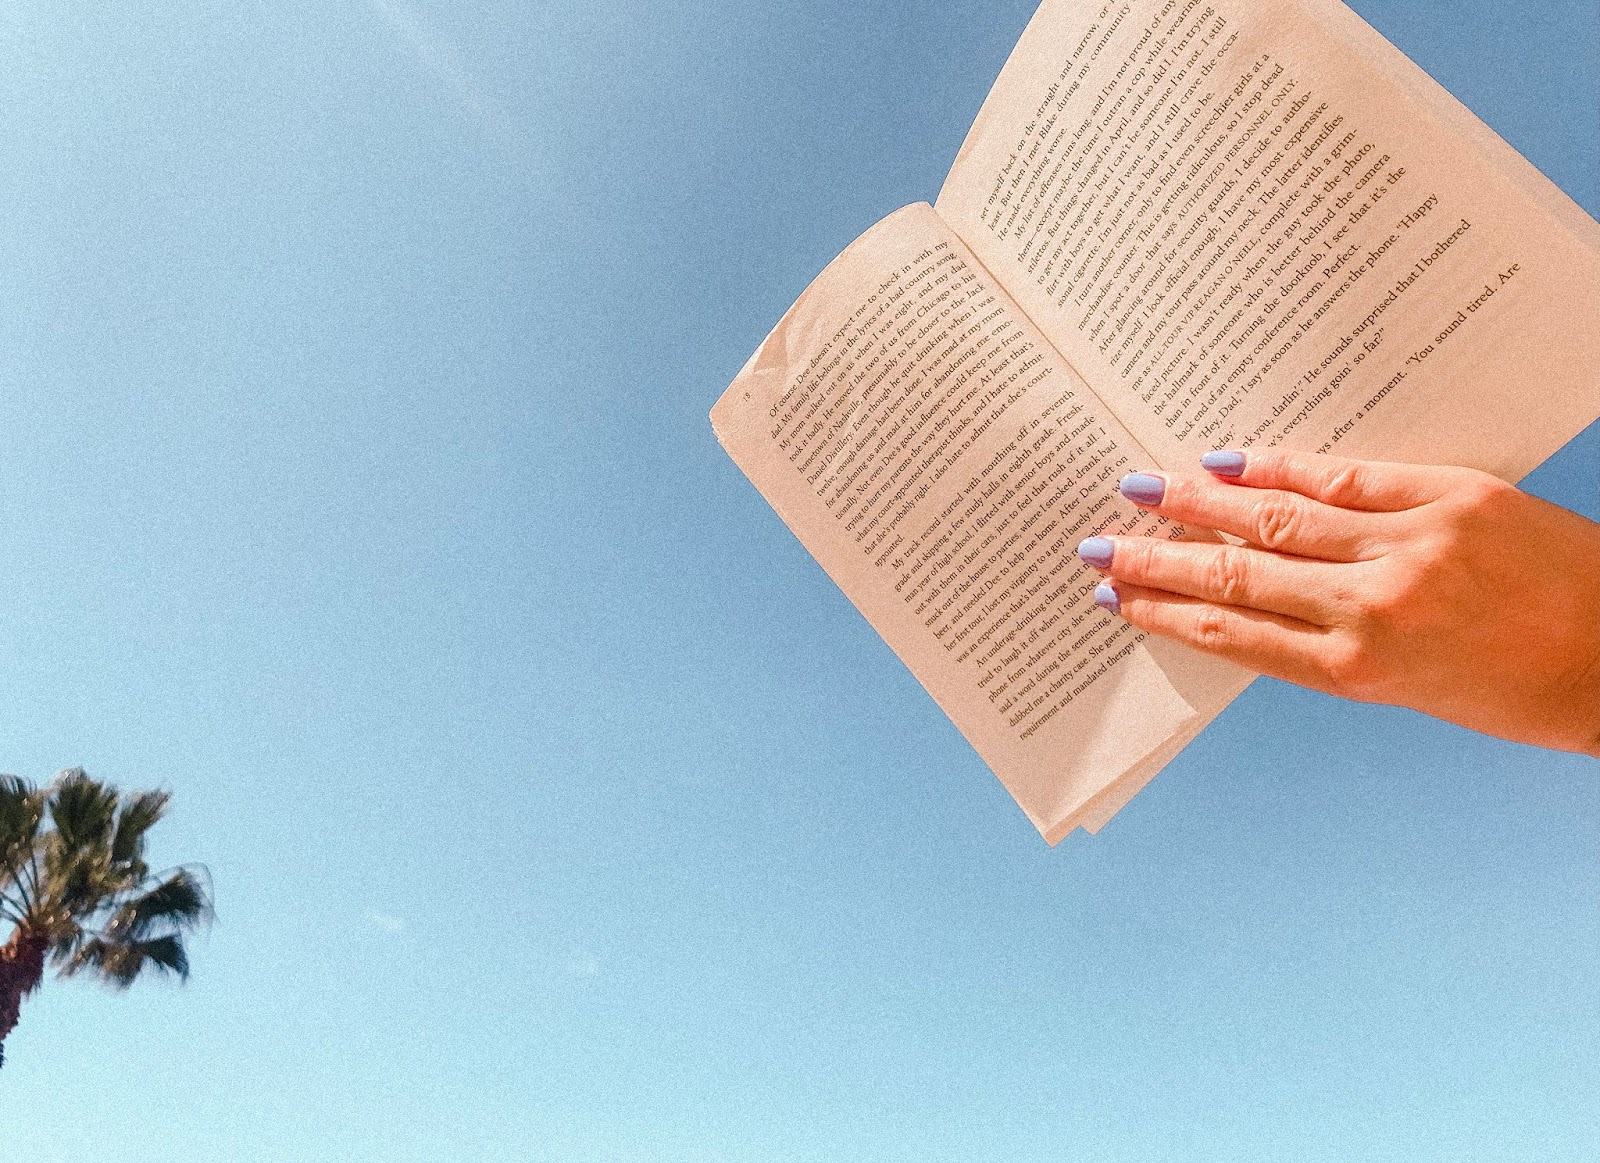 open  book in blue sky with palmtrees